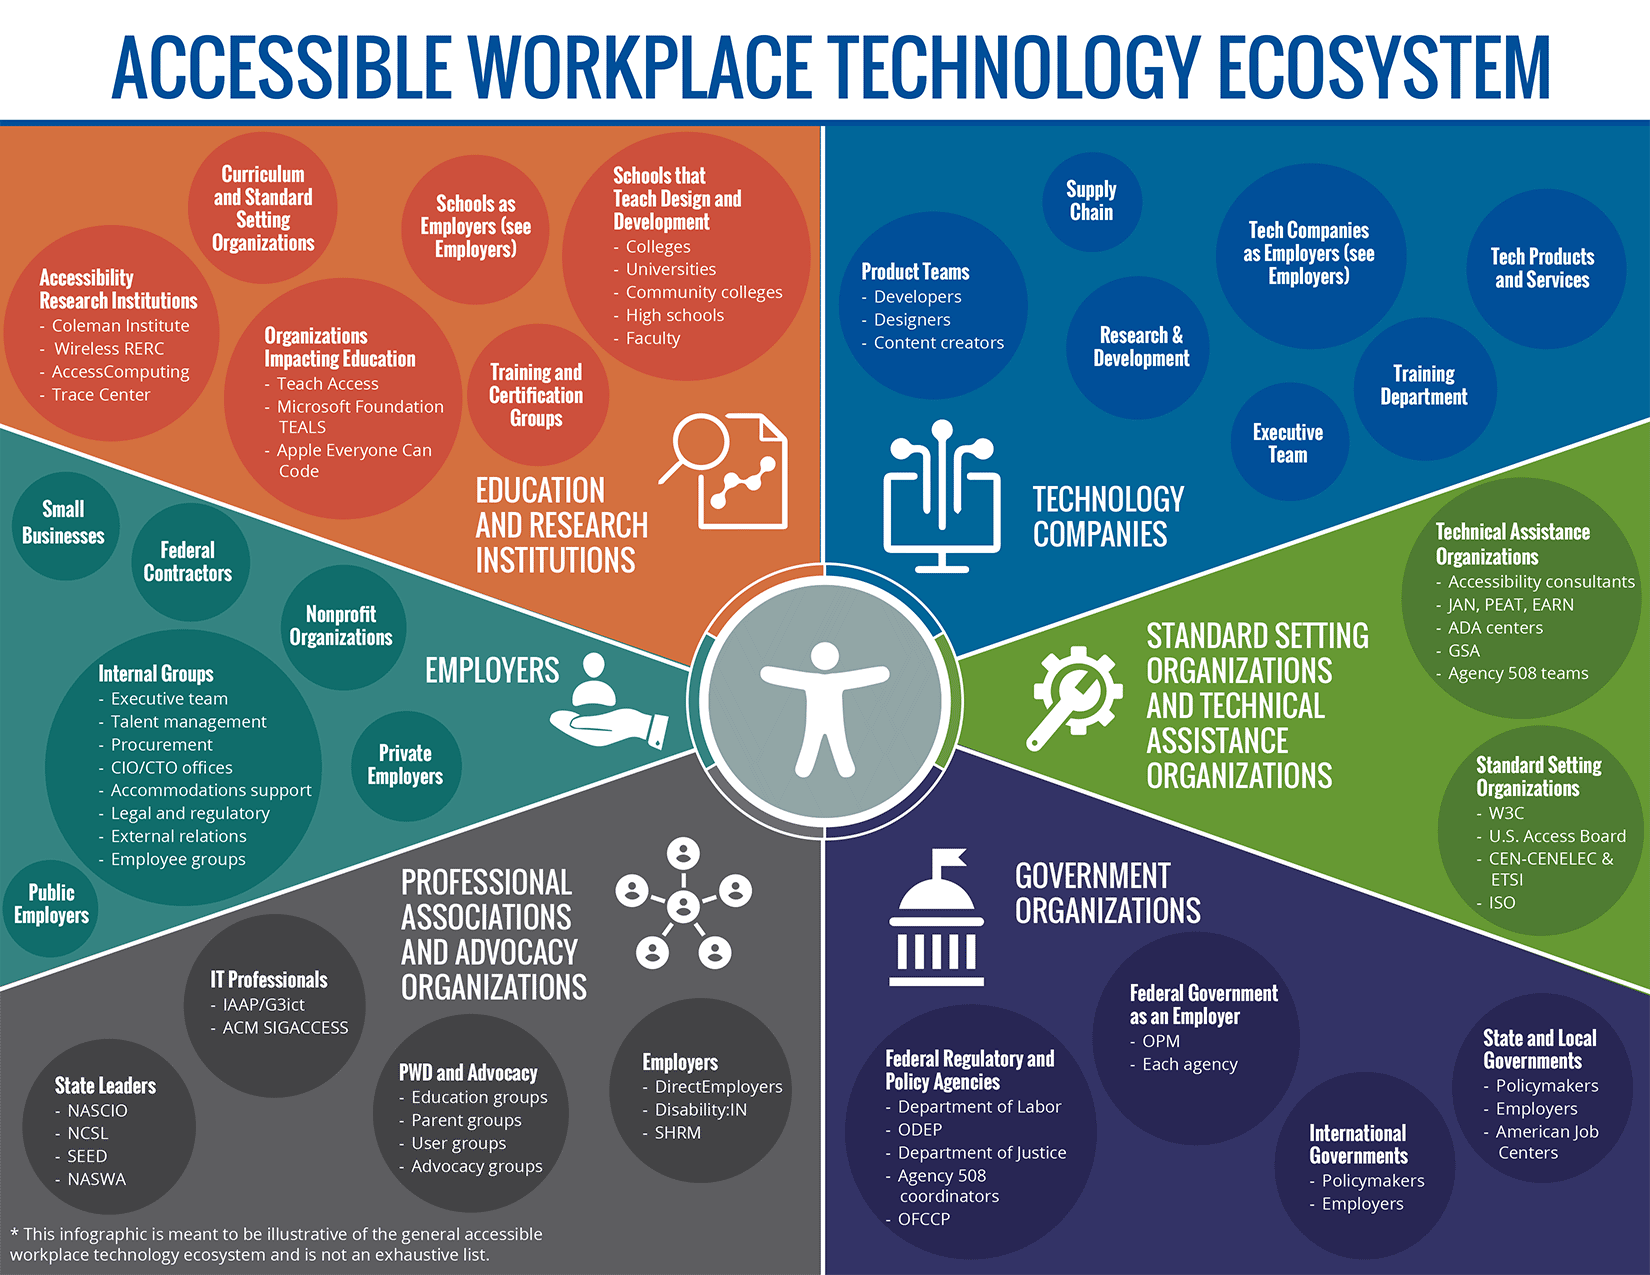 Accessible Workplace Technology Ecosystem Infographic. Click to view larger version.